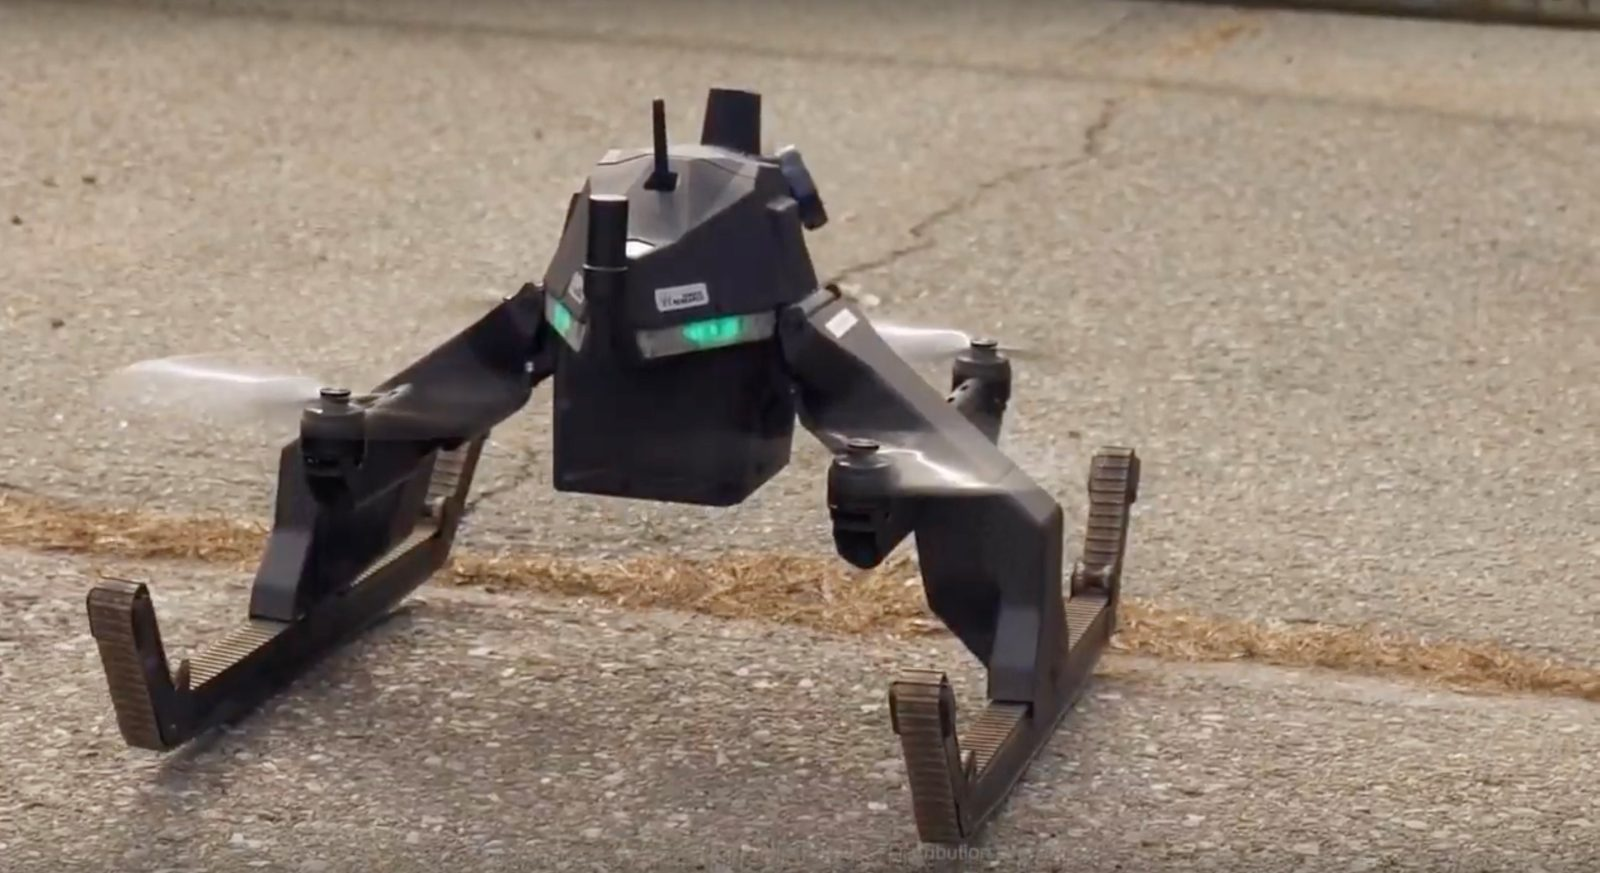 Your drone may be rad in flight, but can it drive around once landed? This one can